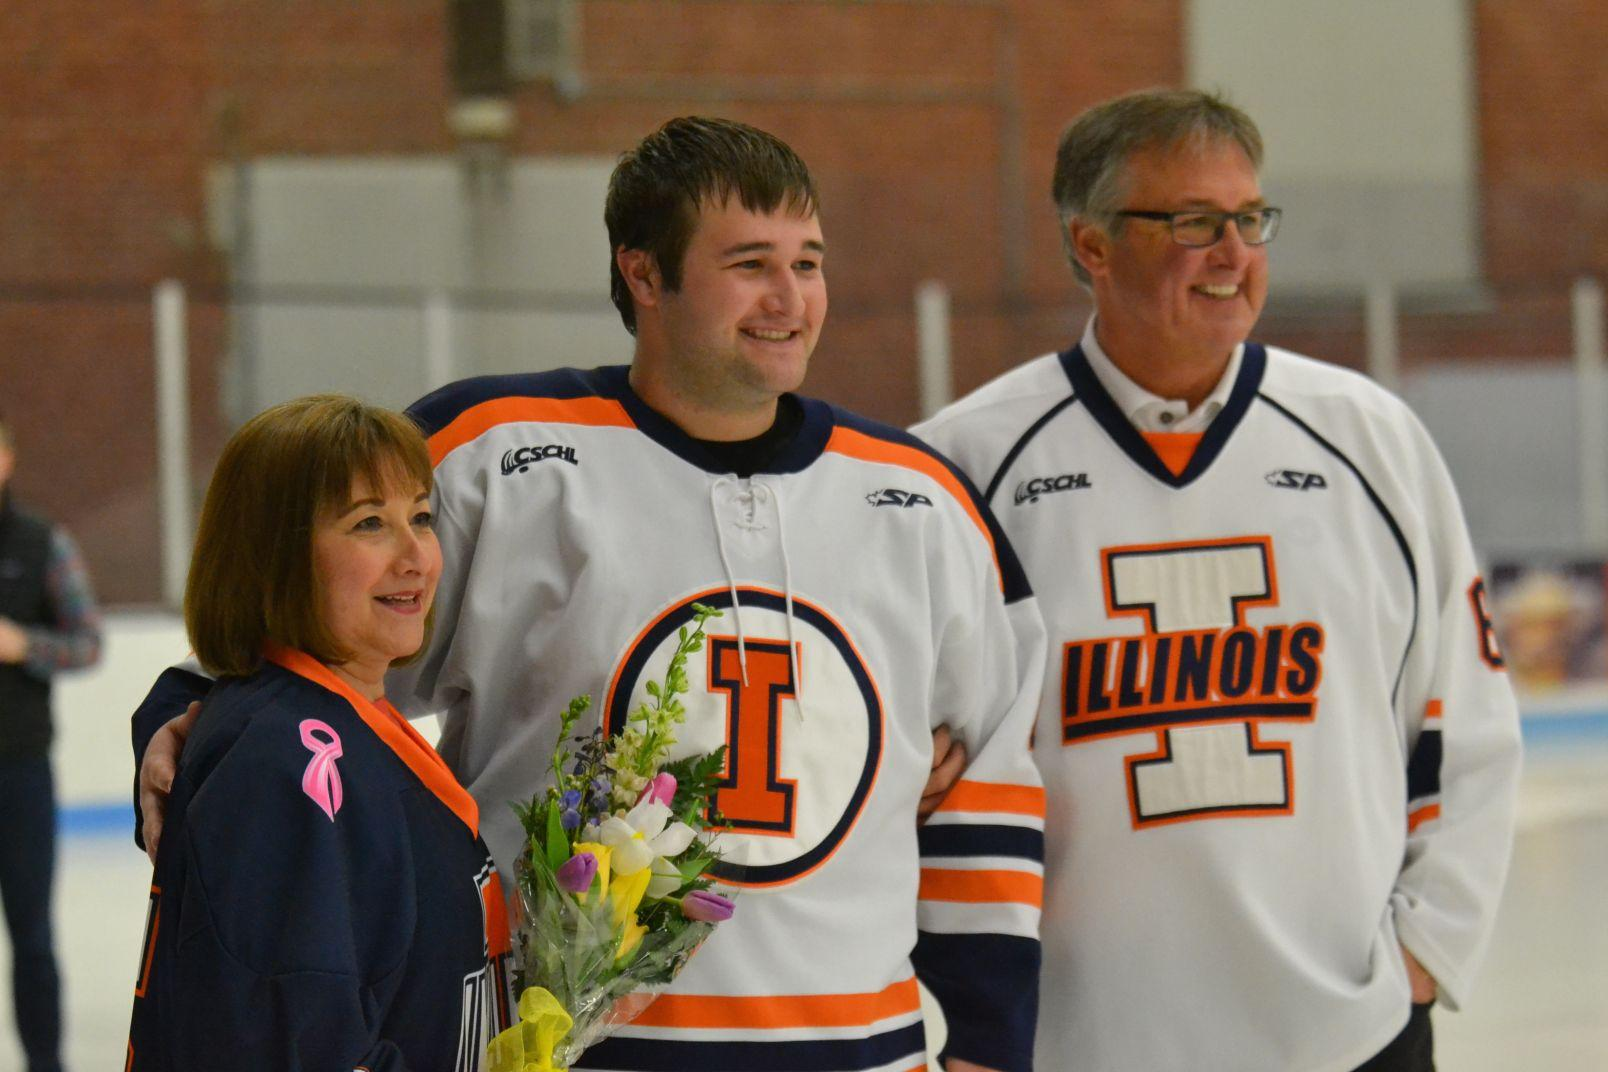 Zoe Grant The Daily Illini Ricky Kokoszka (6) is acknowledged during Senior Night at the University of Illinois Ice Arena on February 28, 2015.